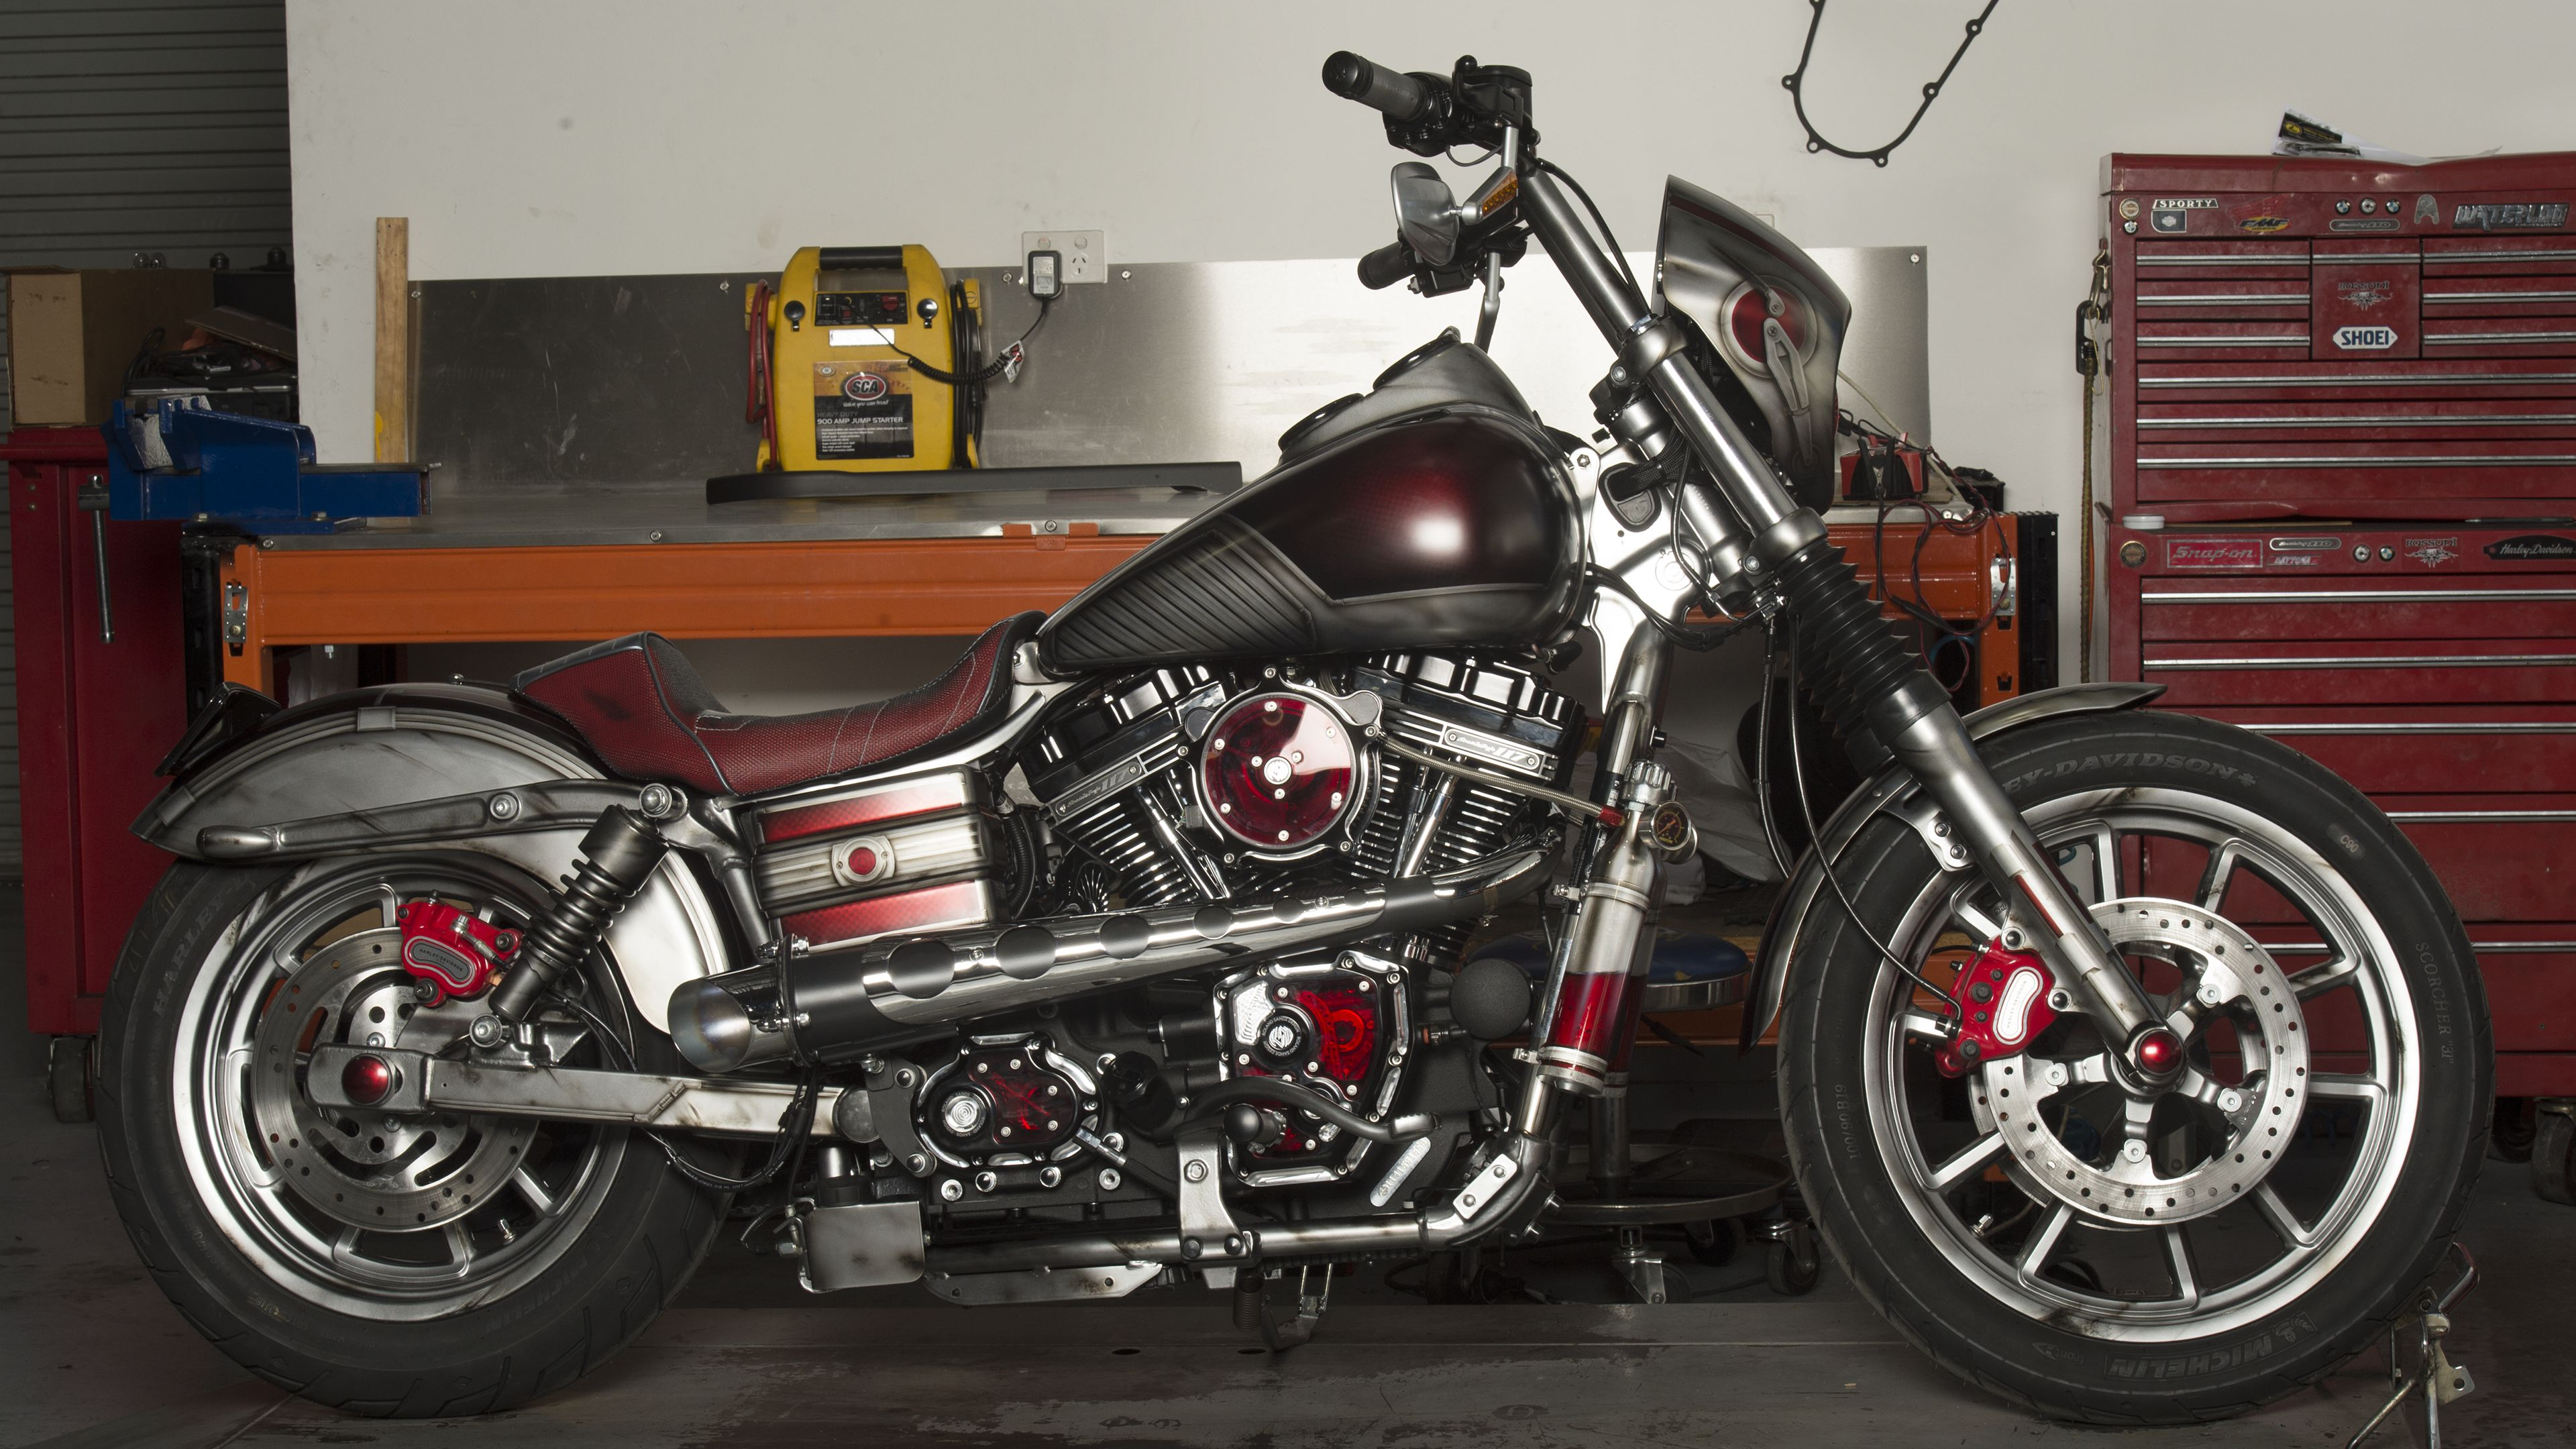 Harley Davidson: For The Superhero In You Image